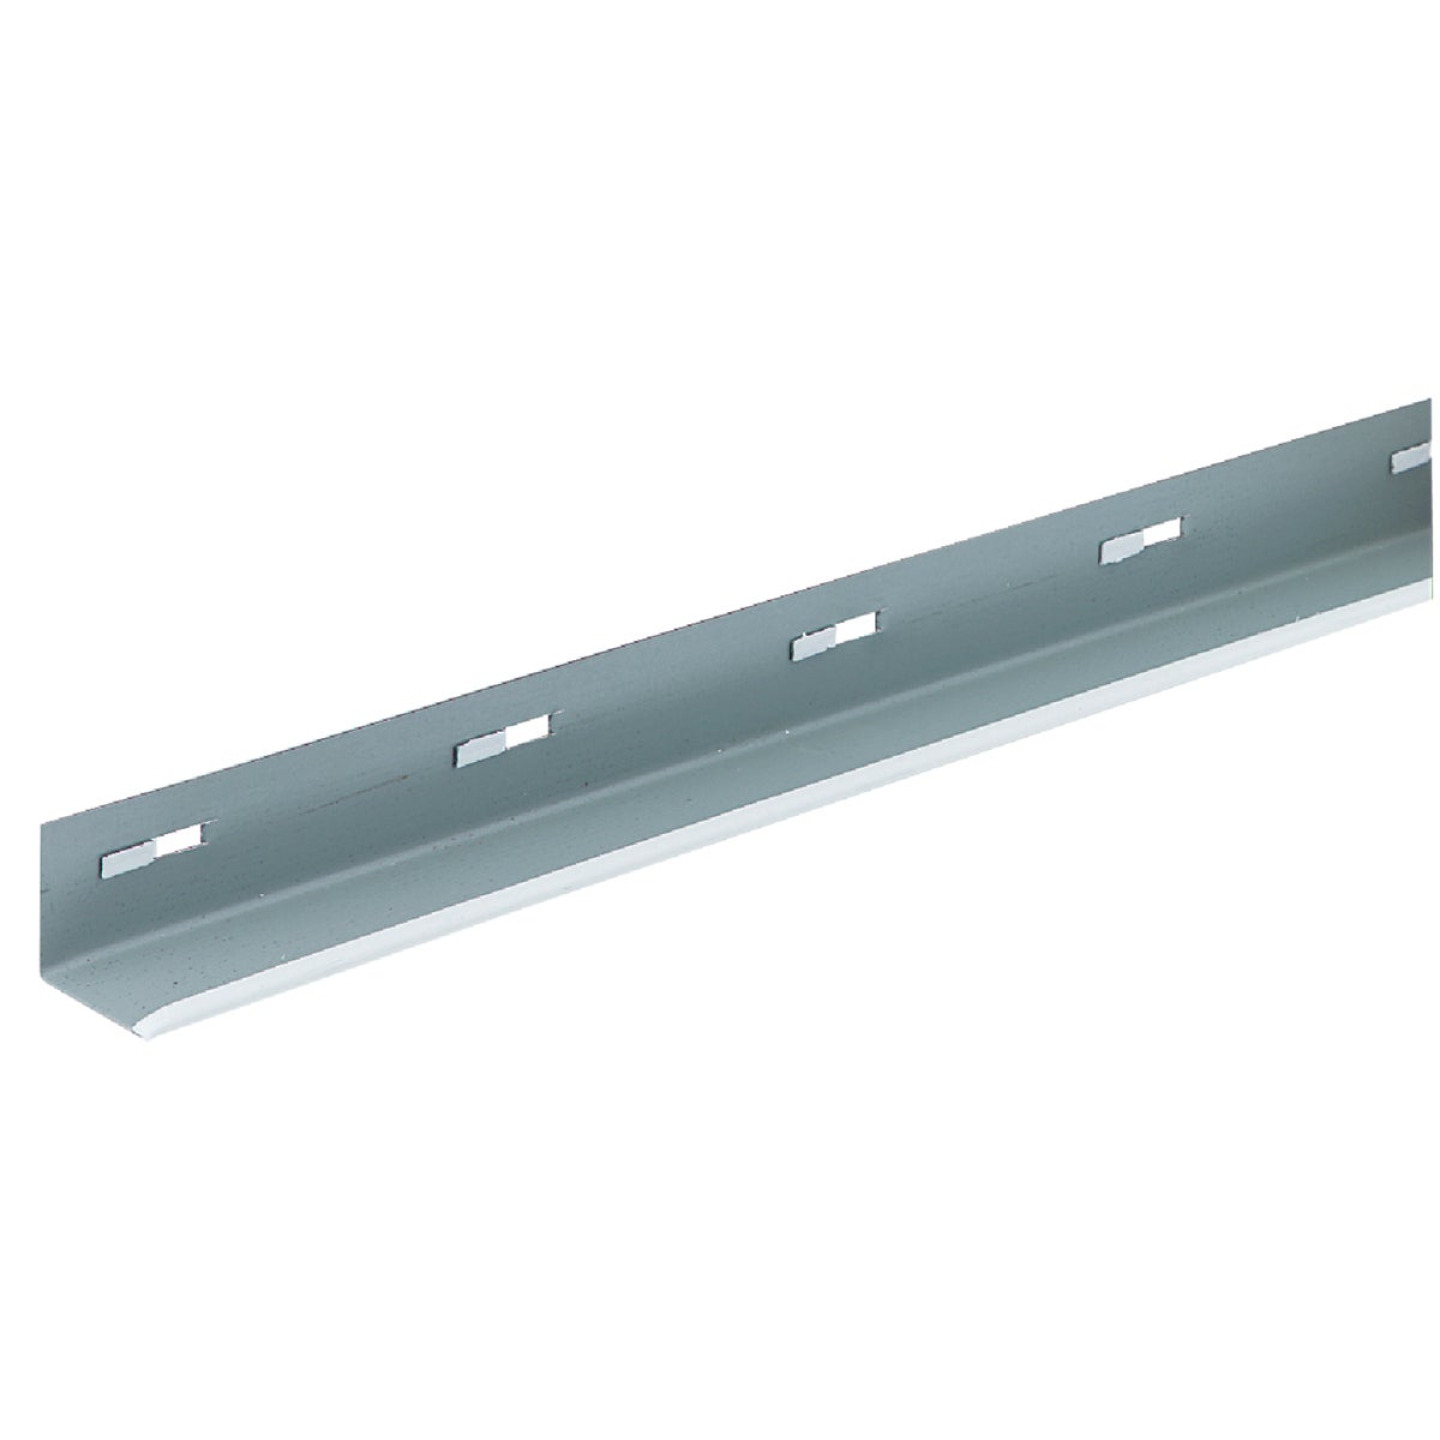 Donn 10 Ft. x 3/4 in. White Steel Ceiling Wall Molding Image 1